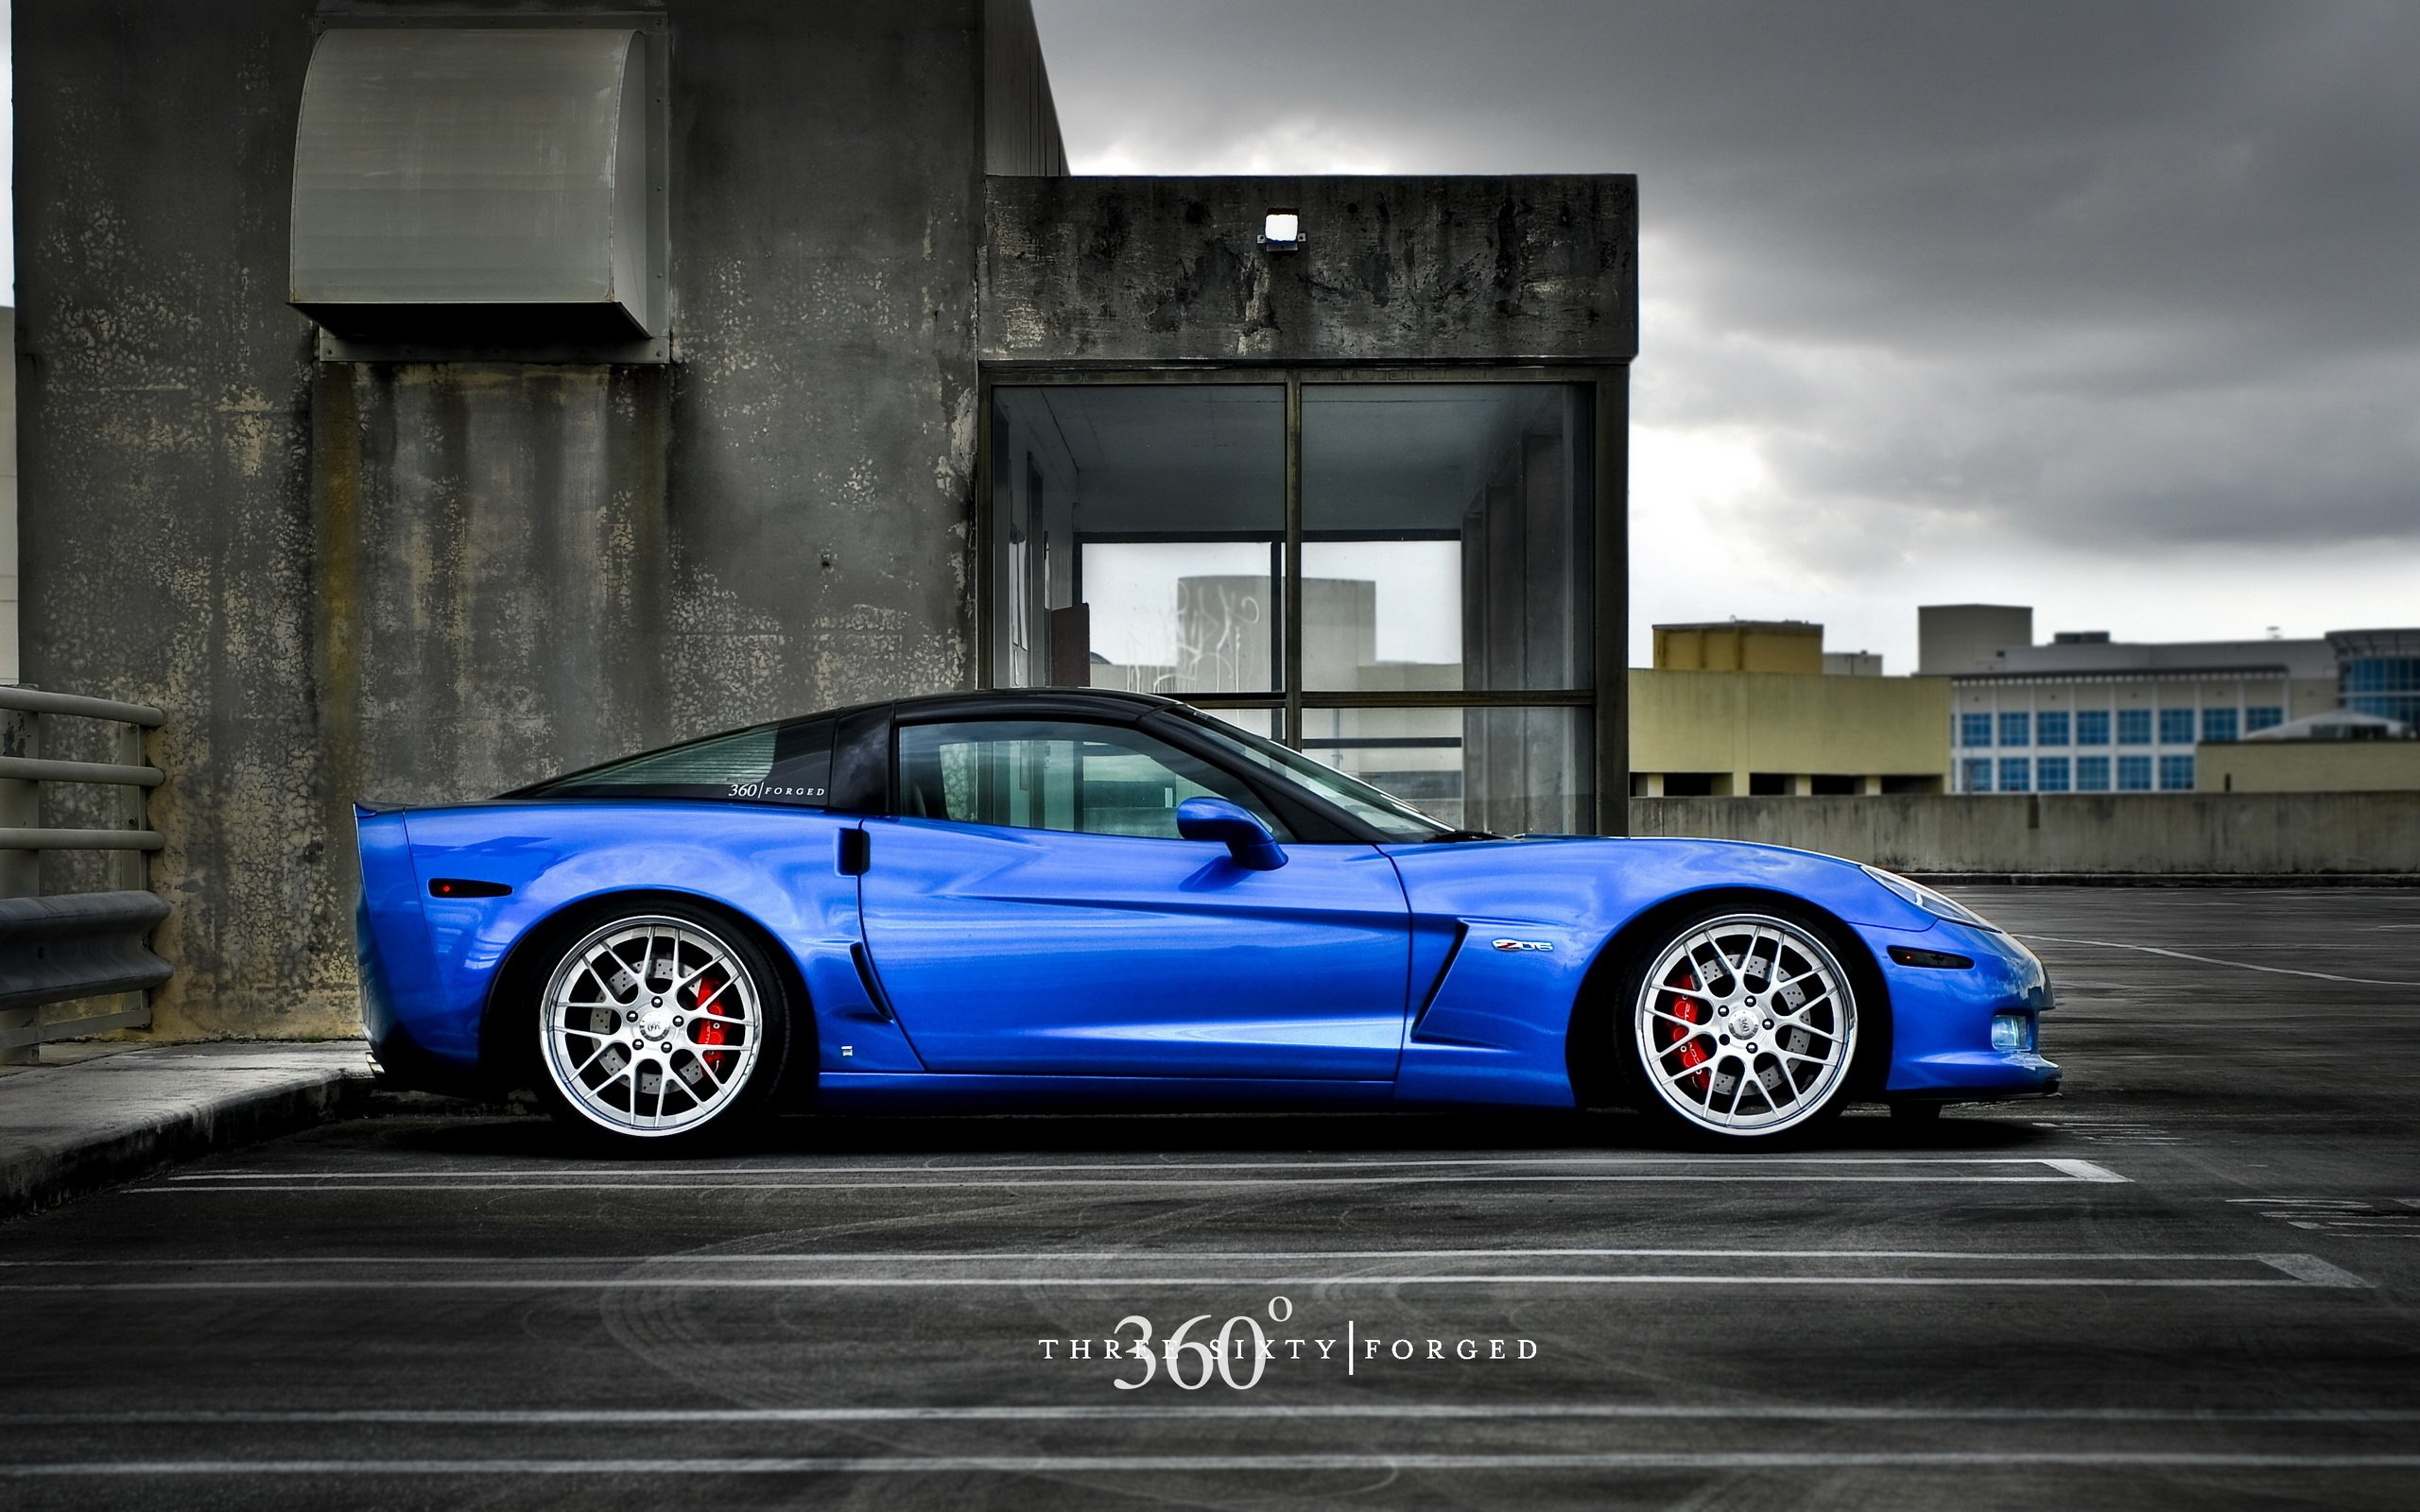 Chevrolet Corvette Z06 wallpapers and images   wallpapers pictures 2560x1600